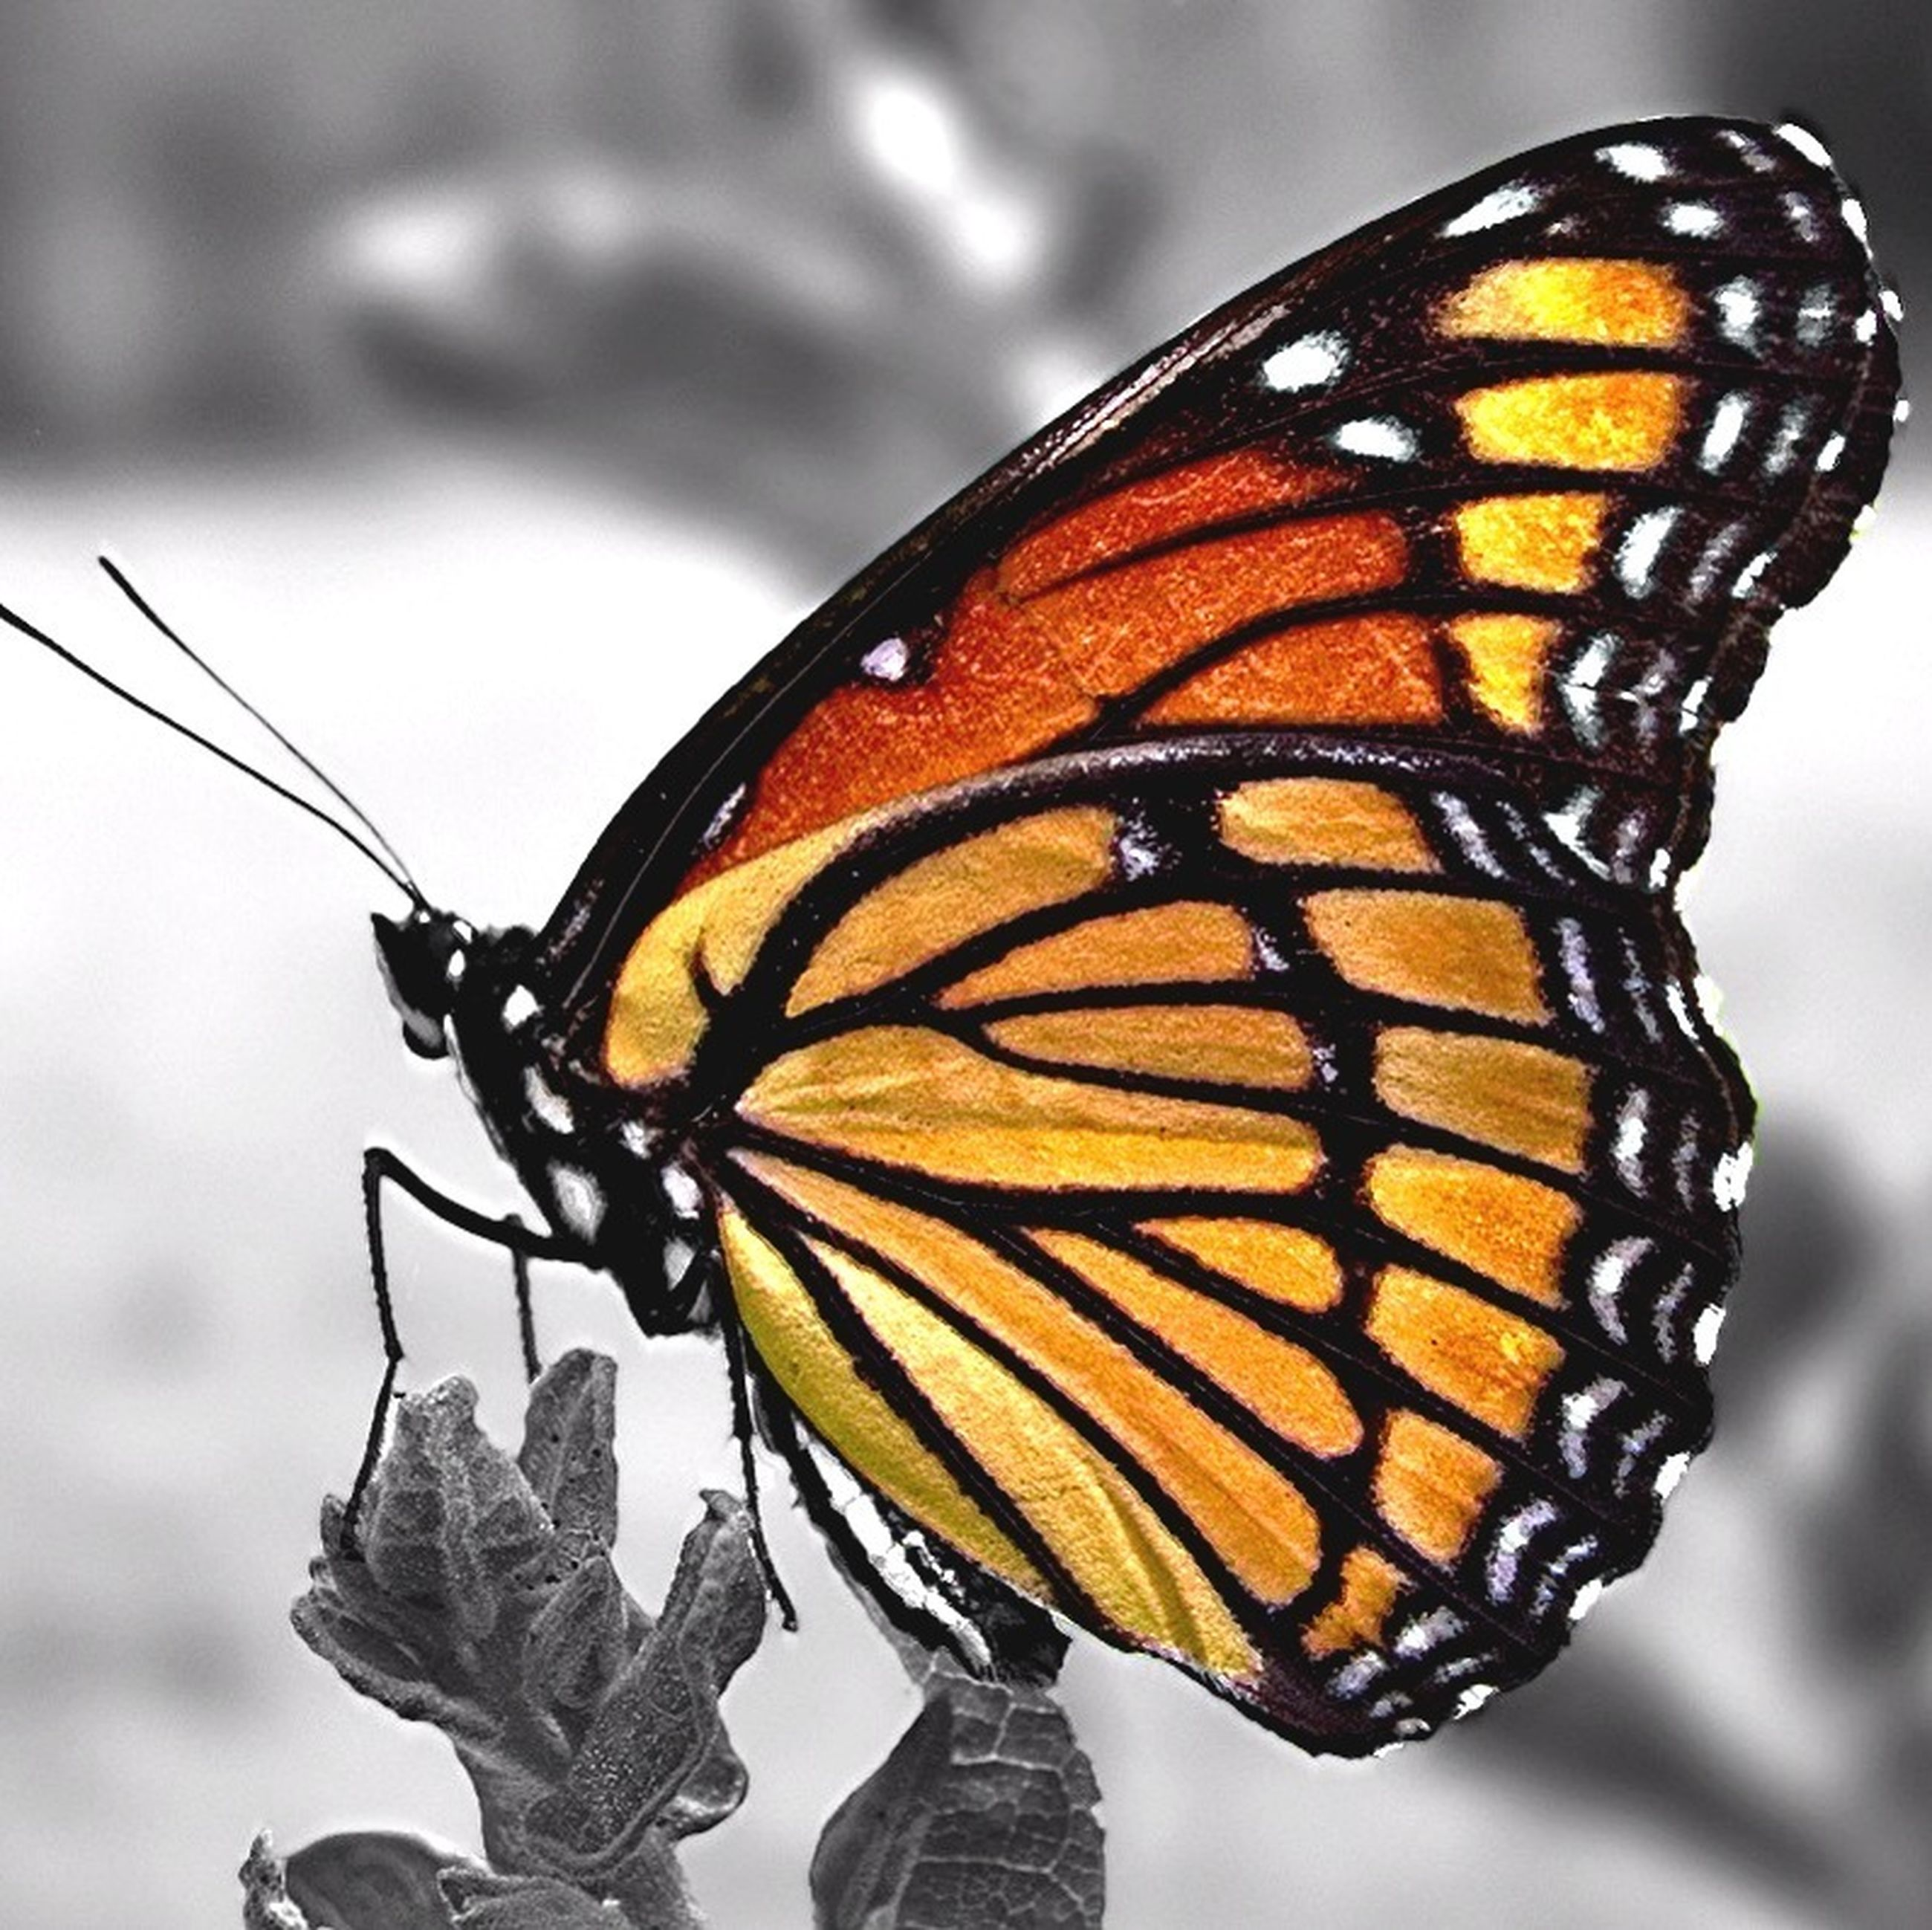 butterfly - insect, focus on foreground, close-up, one animal, insect, orange color, butterfly, animal markings, animal themes, animals in the wild, natural pattern, animal wing, nature, wildlife, beauty in nature, outdoors, animal antenna, fragility, day, no people